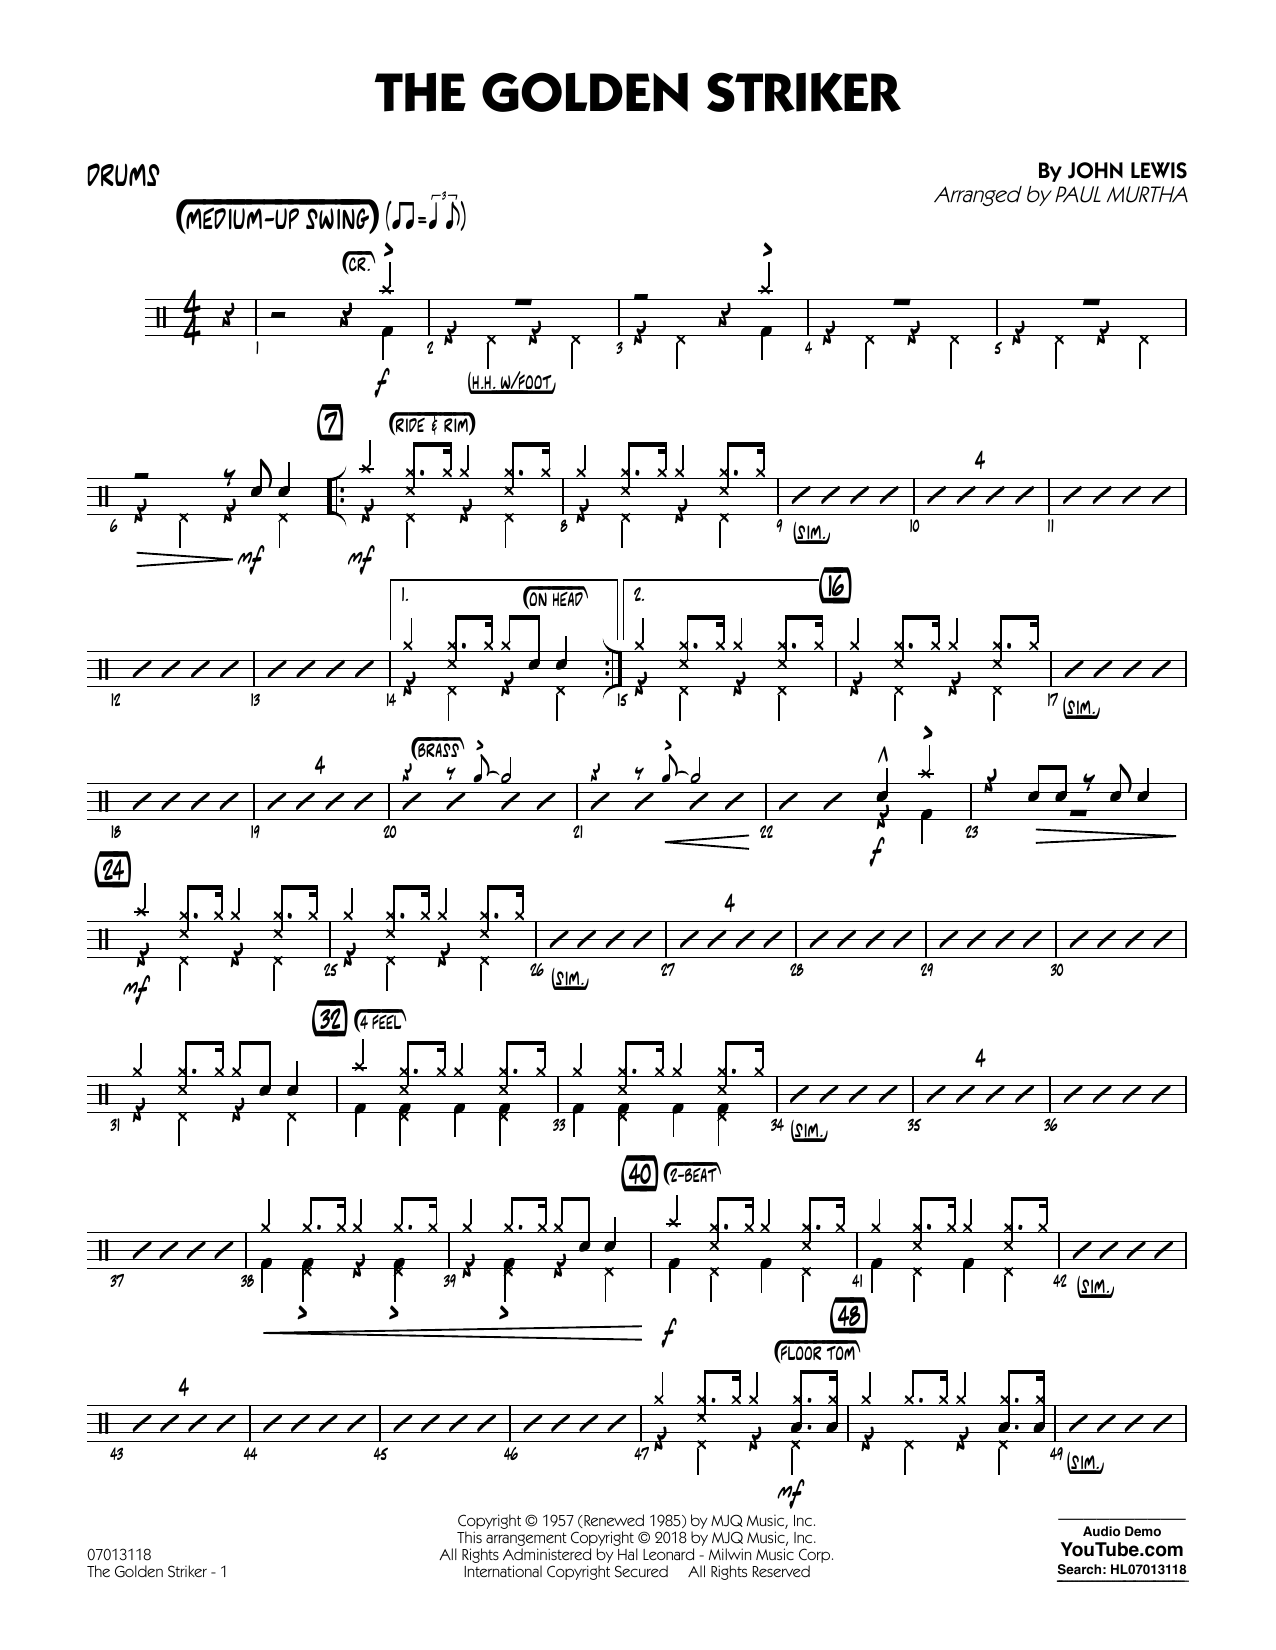 Paul Murtha The Golden Striker - Drums sheet music notes and chords. Download Printable PDF.